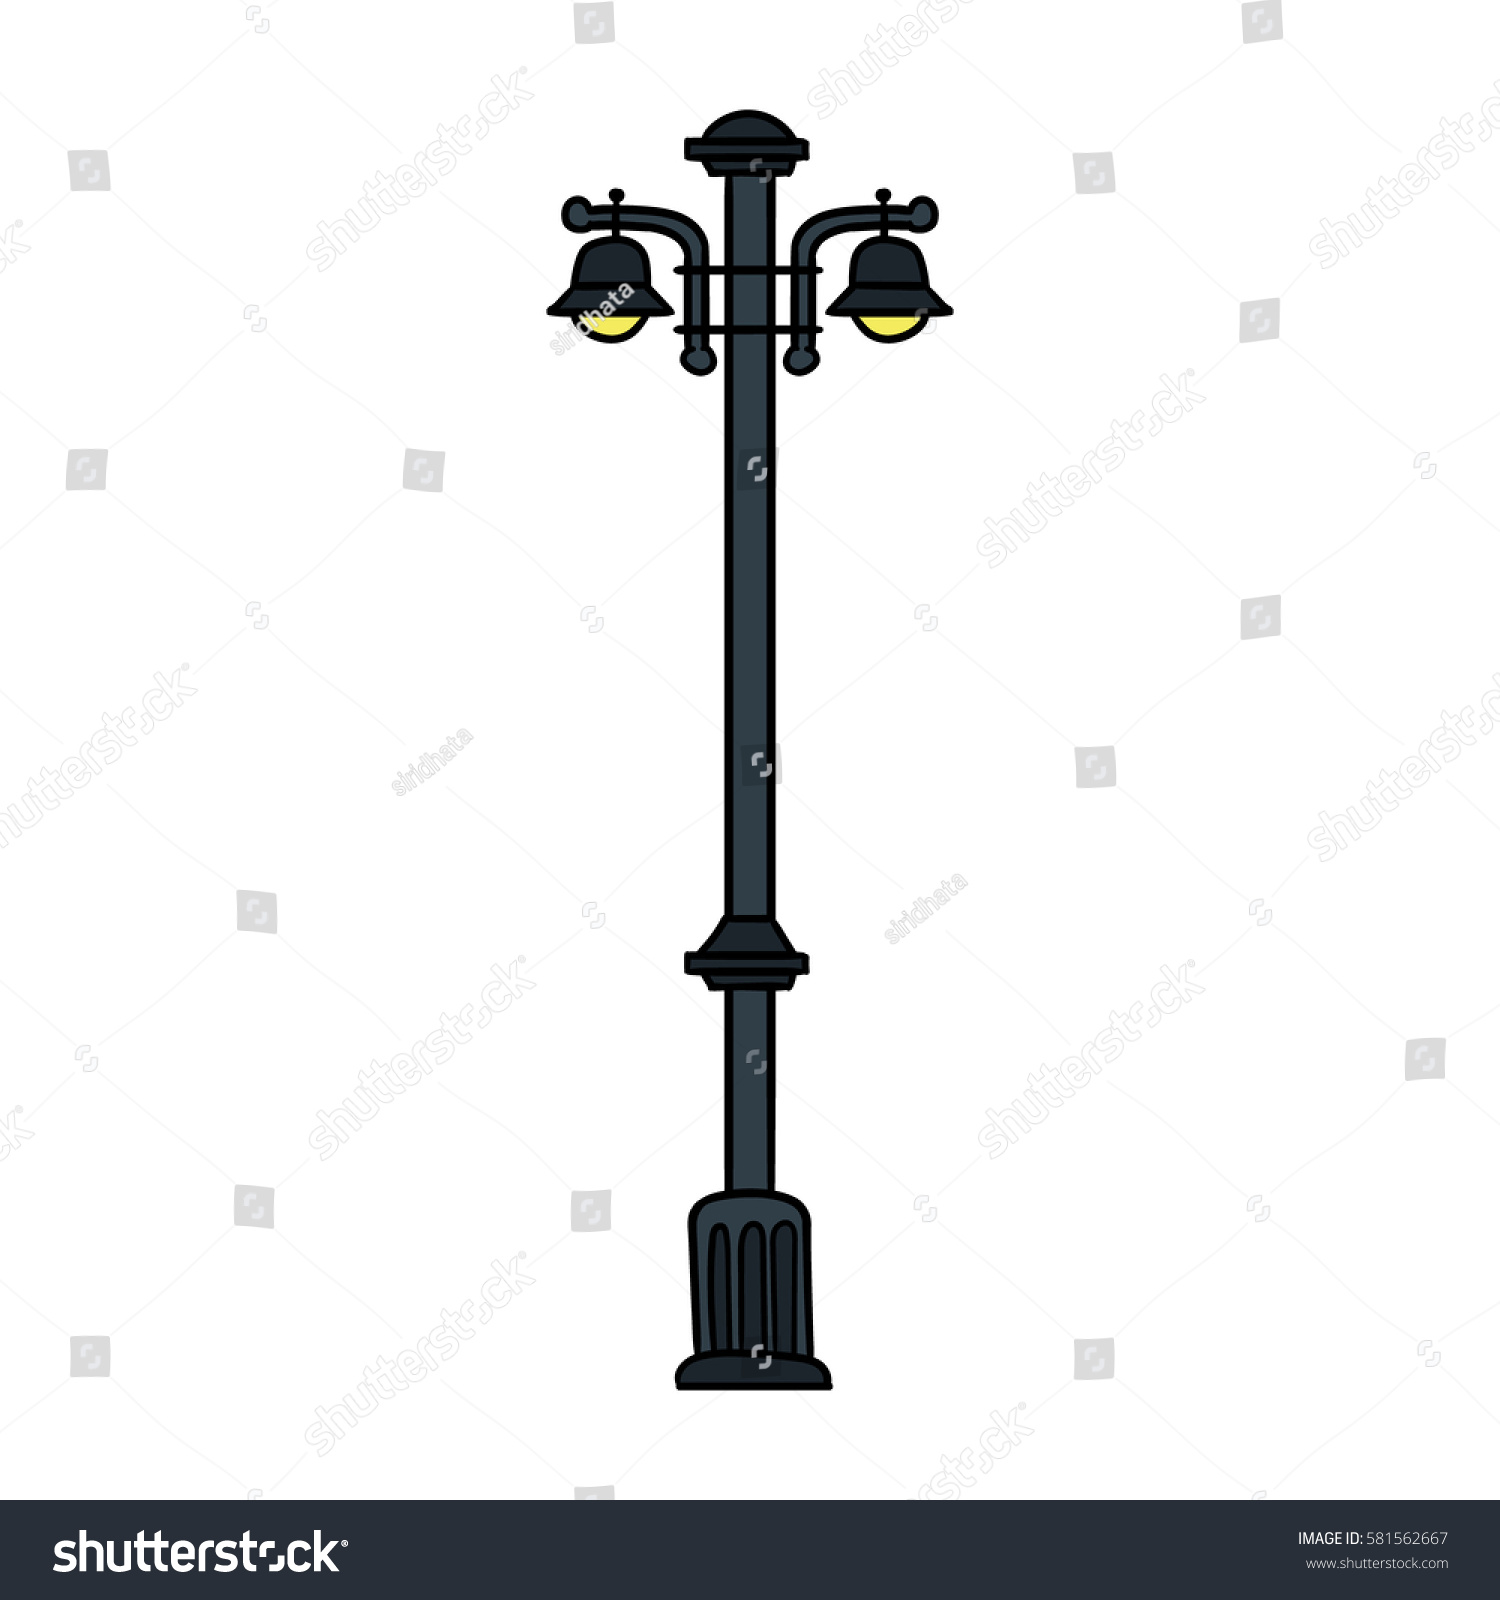 Cartoon Lamp Post Vector Illustration Stock Vector HD (Royalty Free ... for Lamp Post Vector Png  584dqh